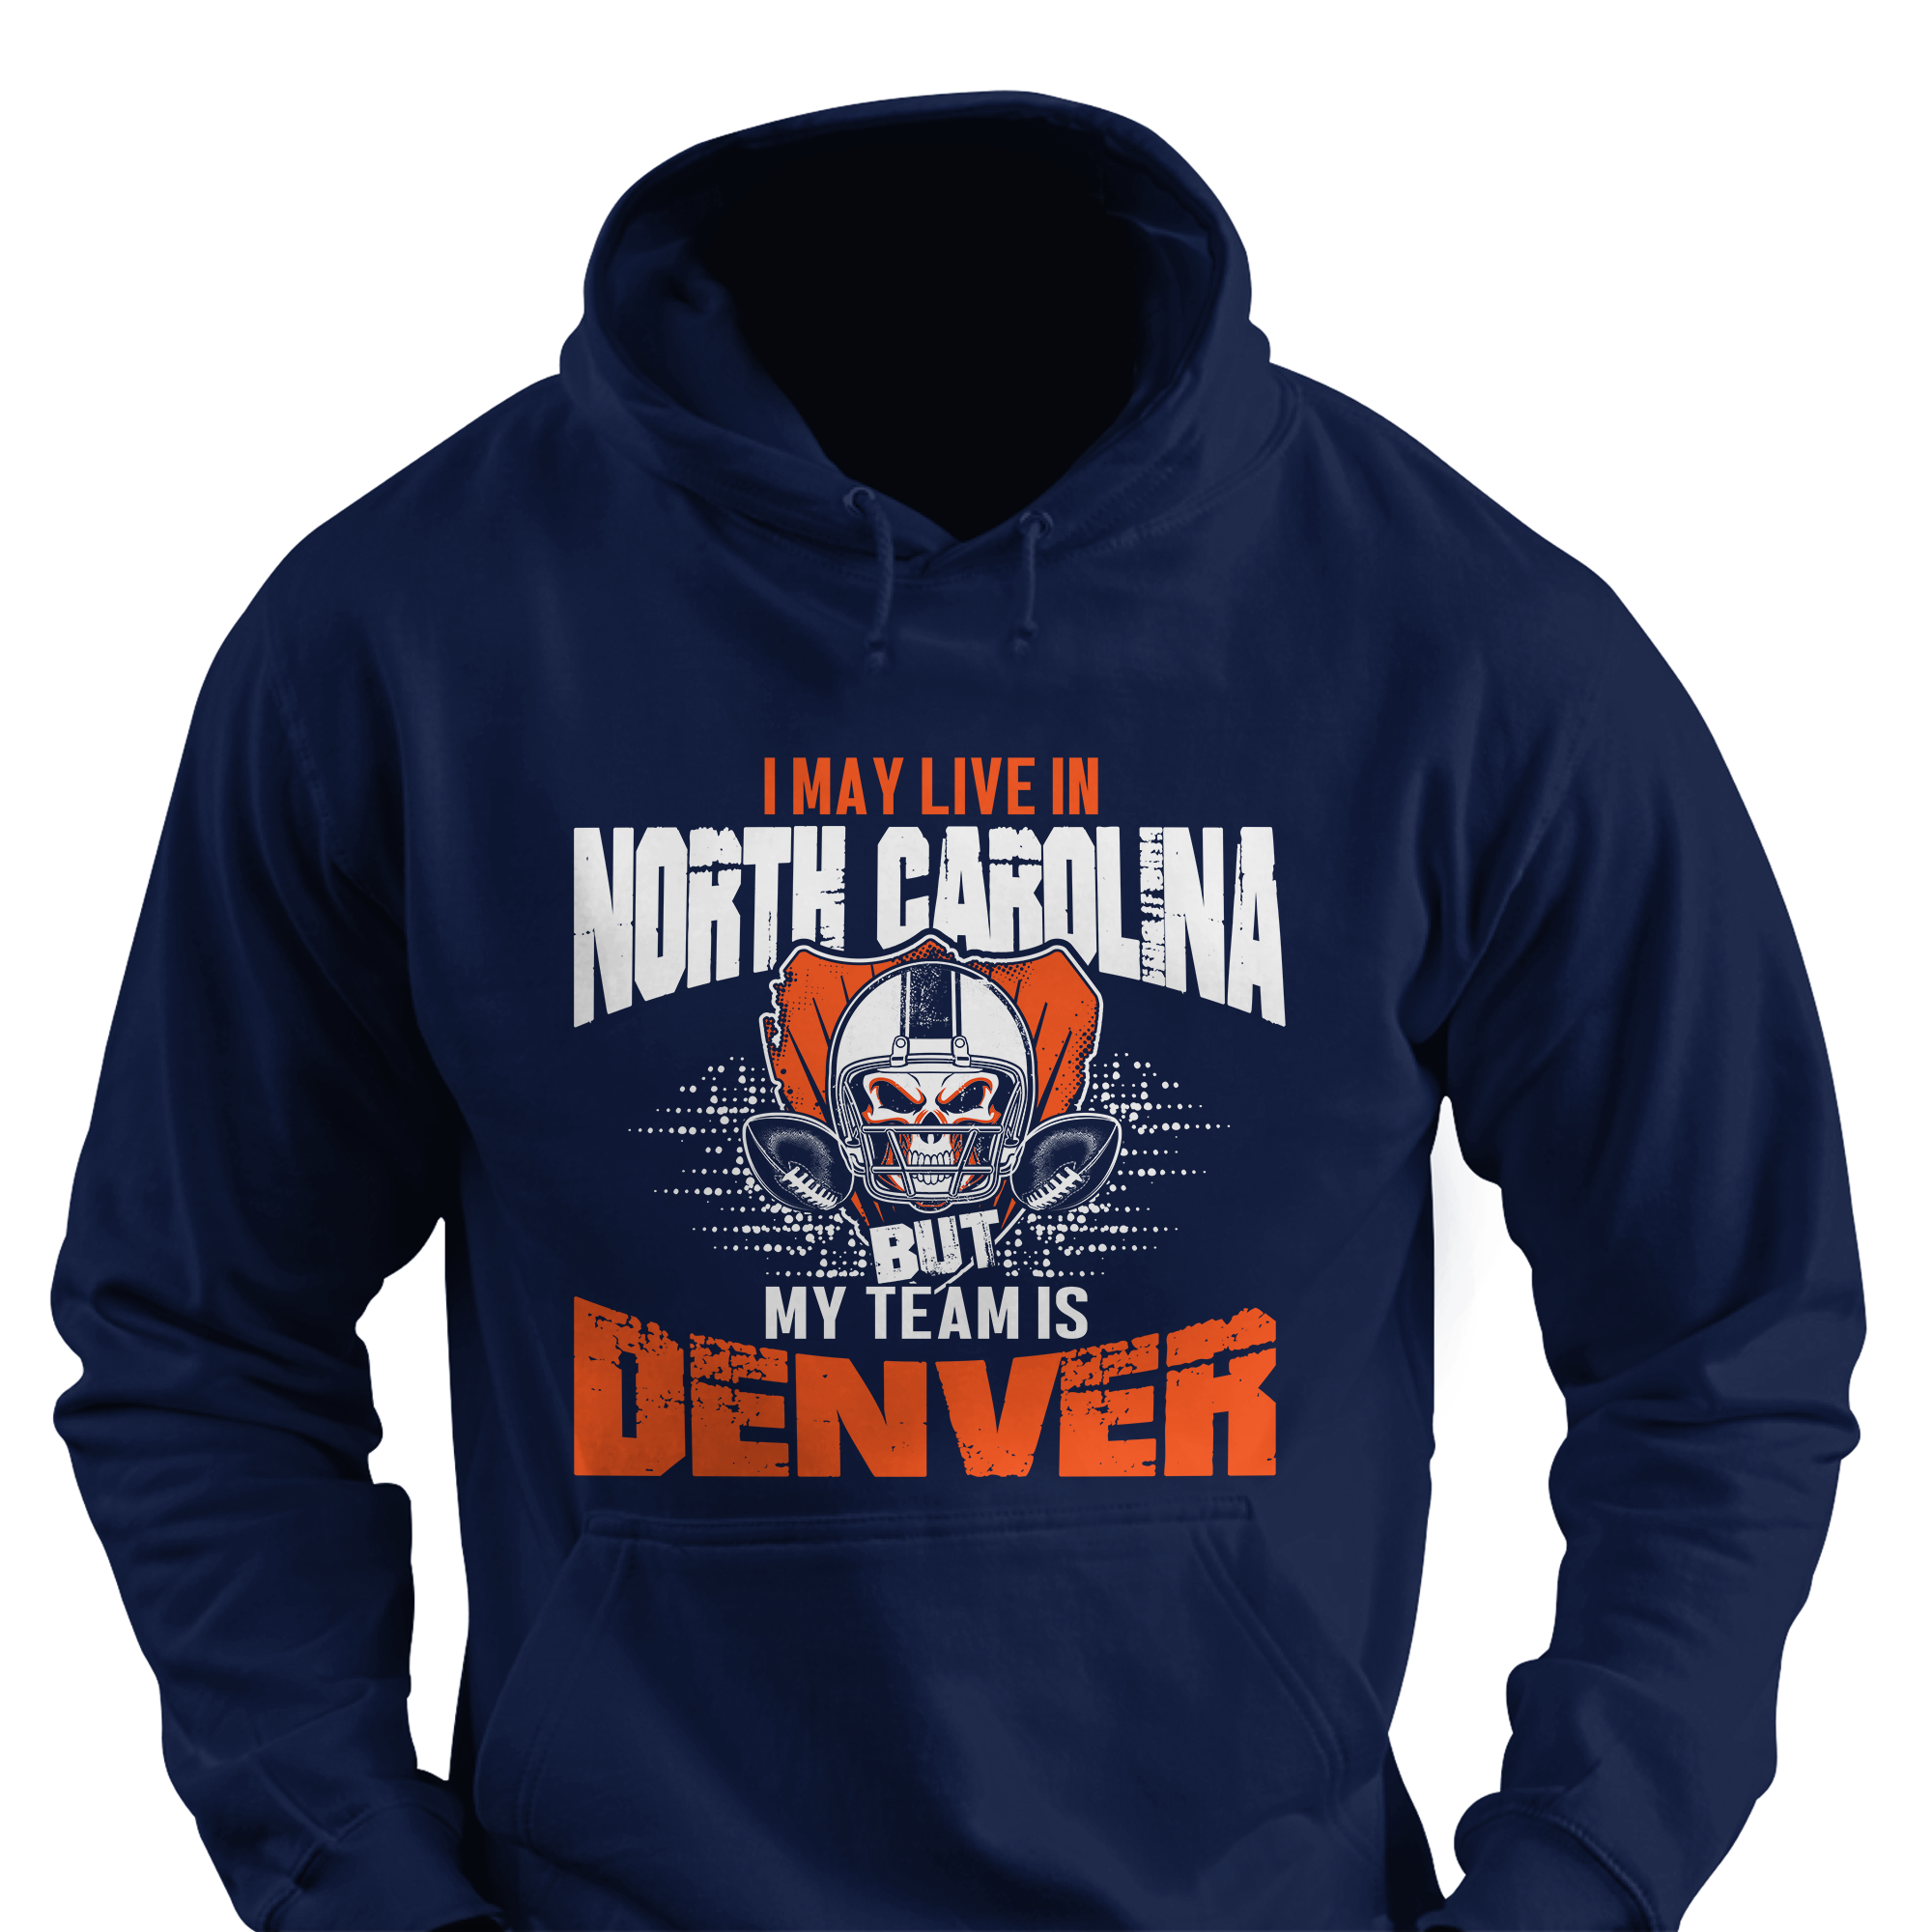 I May Live in North Carolina but My Team is Denver